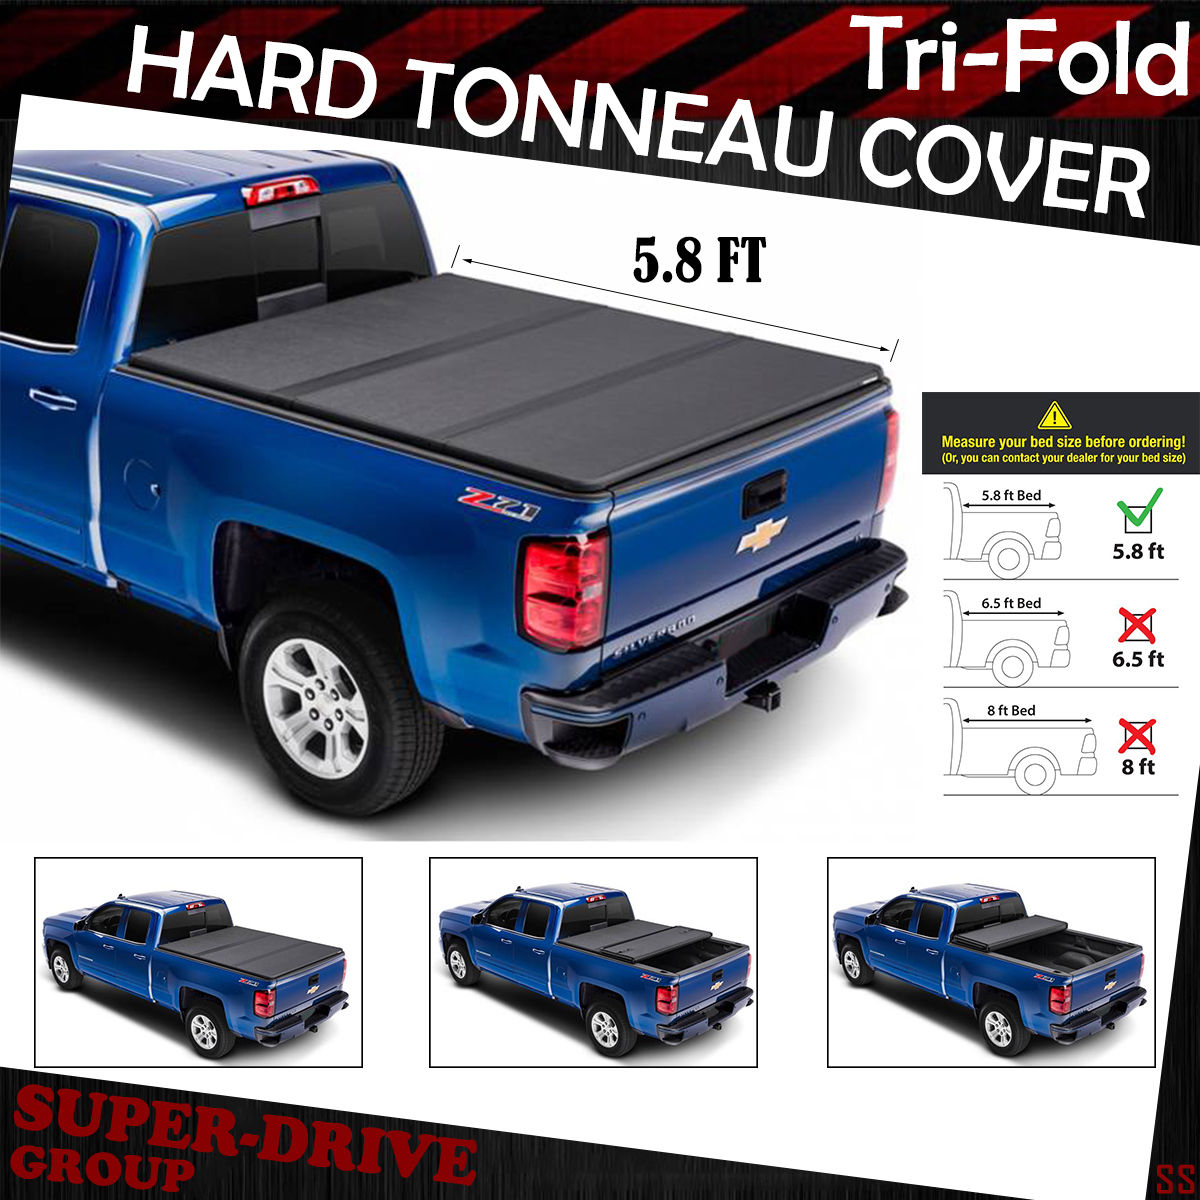 hight resolution of lock tri fold hard tonneau cover for 2014 2018 chevy silverado 5 8 ft short bed